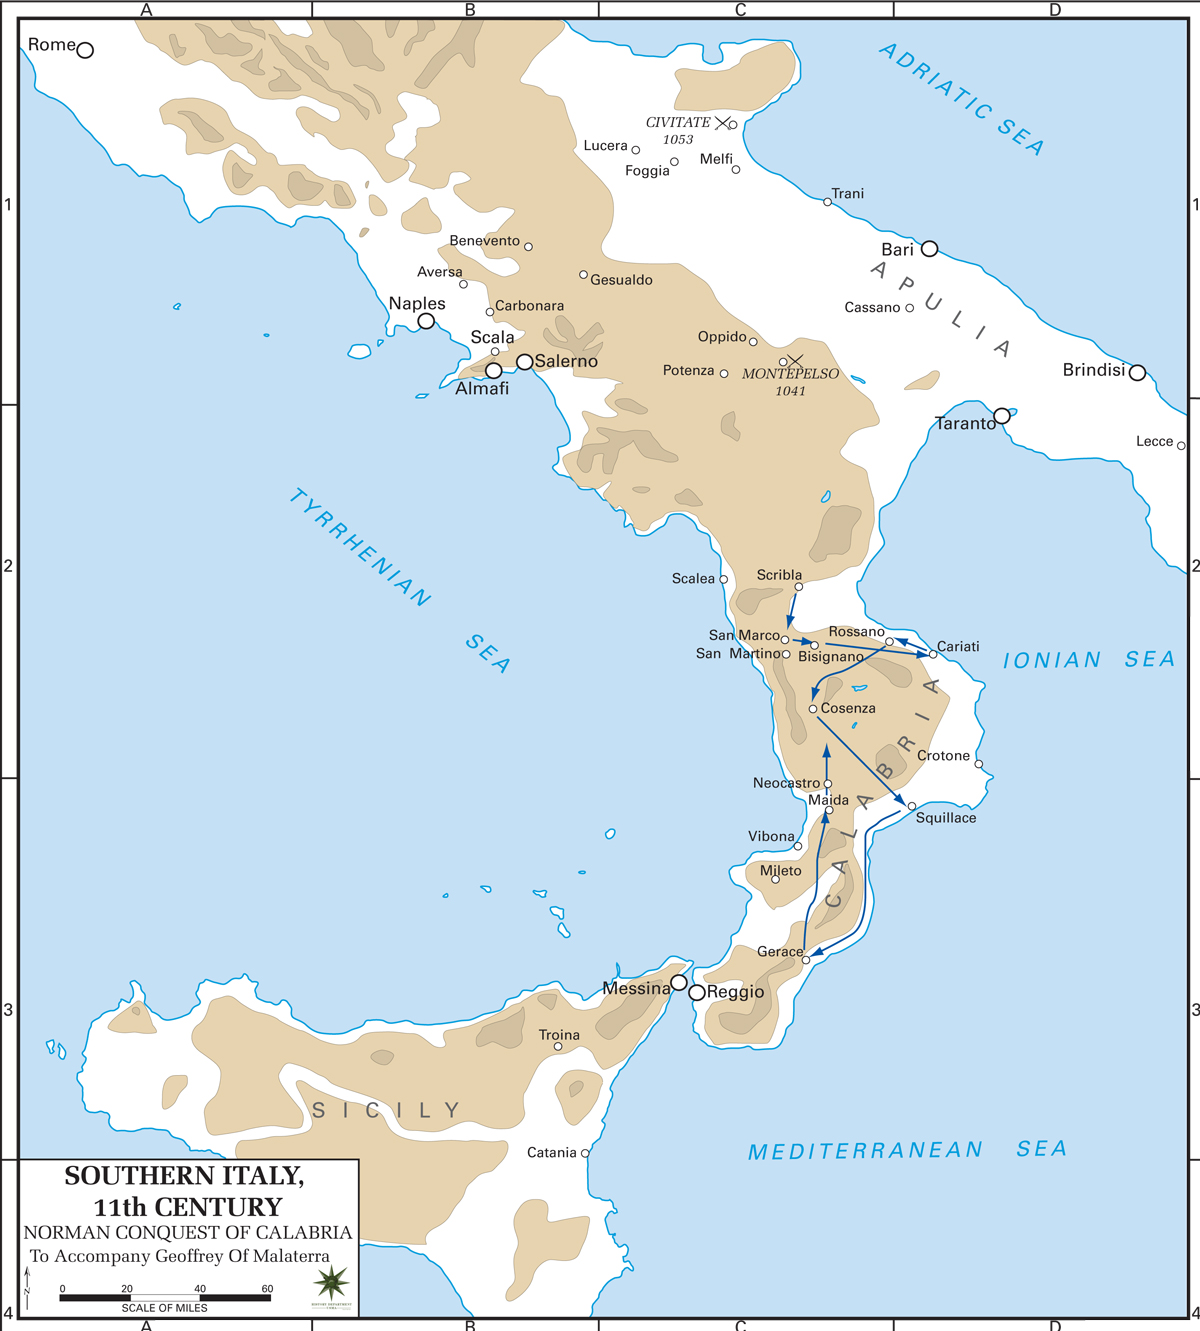 Map Of South Of Italy.Map Of Southern Italy 11th Century